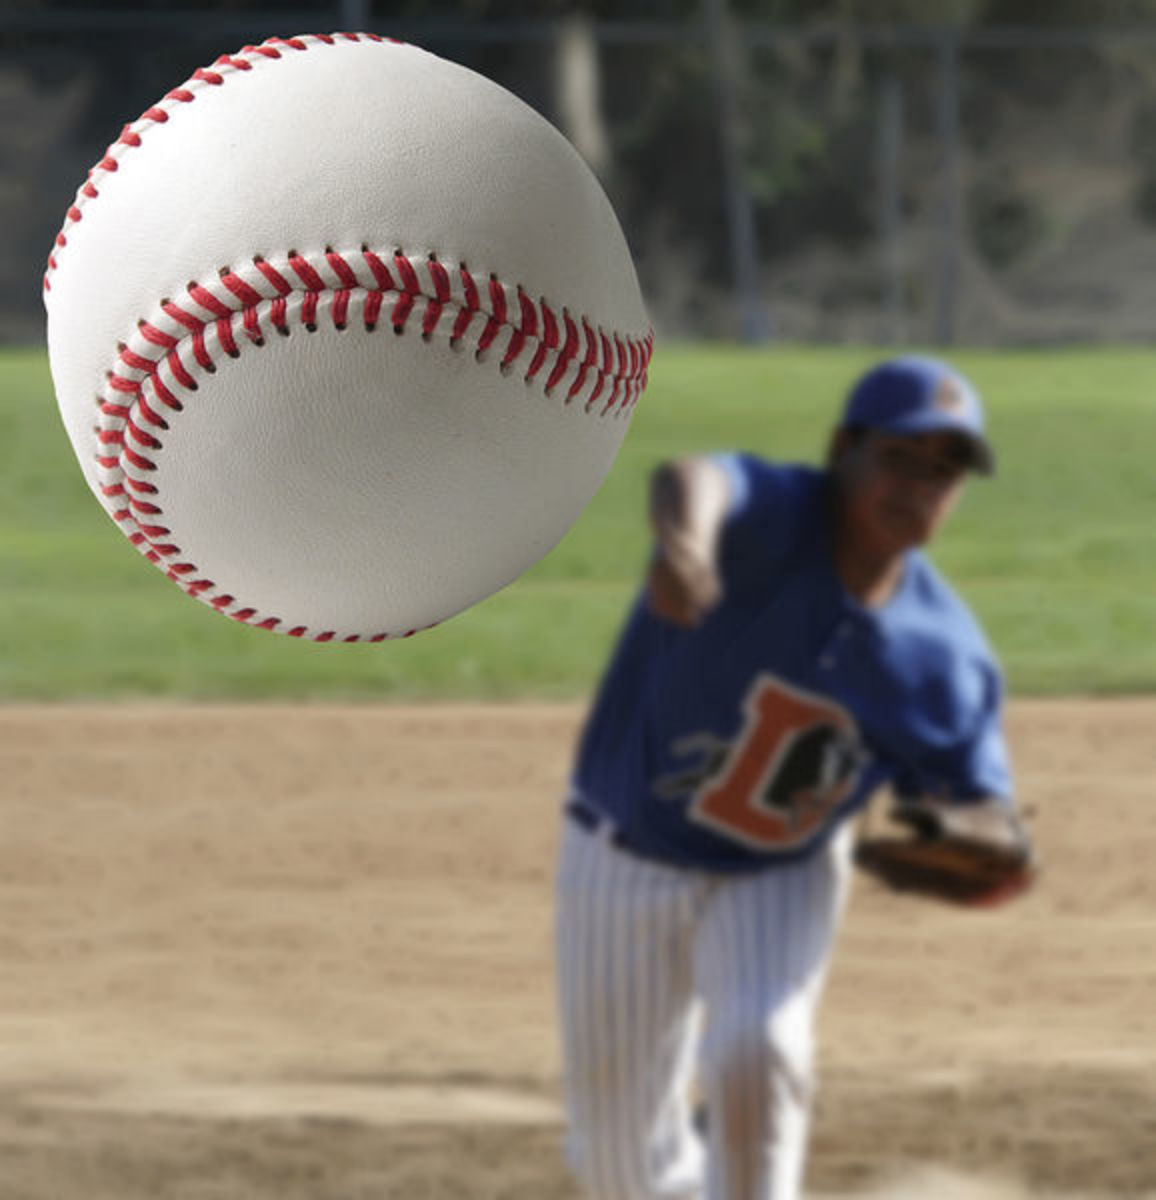 What a toss! Regardless of what position you play, knowing how to throw a baseball accurately is one of the most important parts of your skillset.